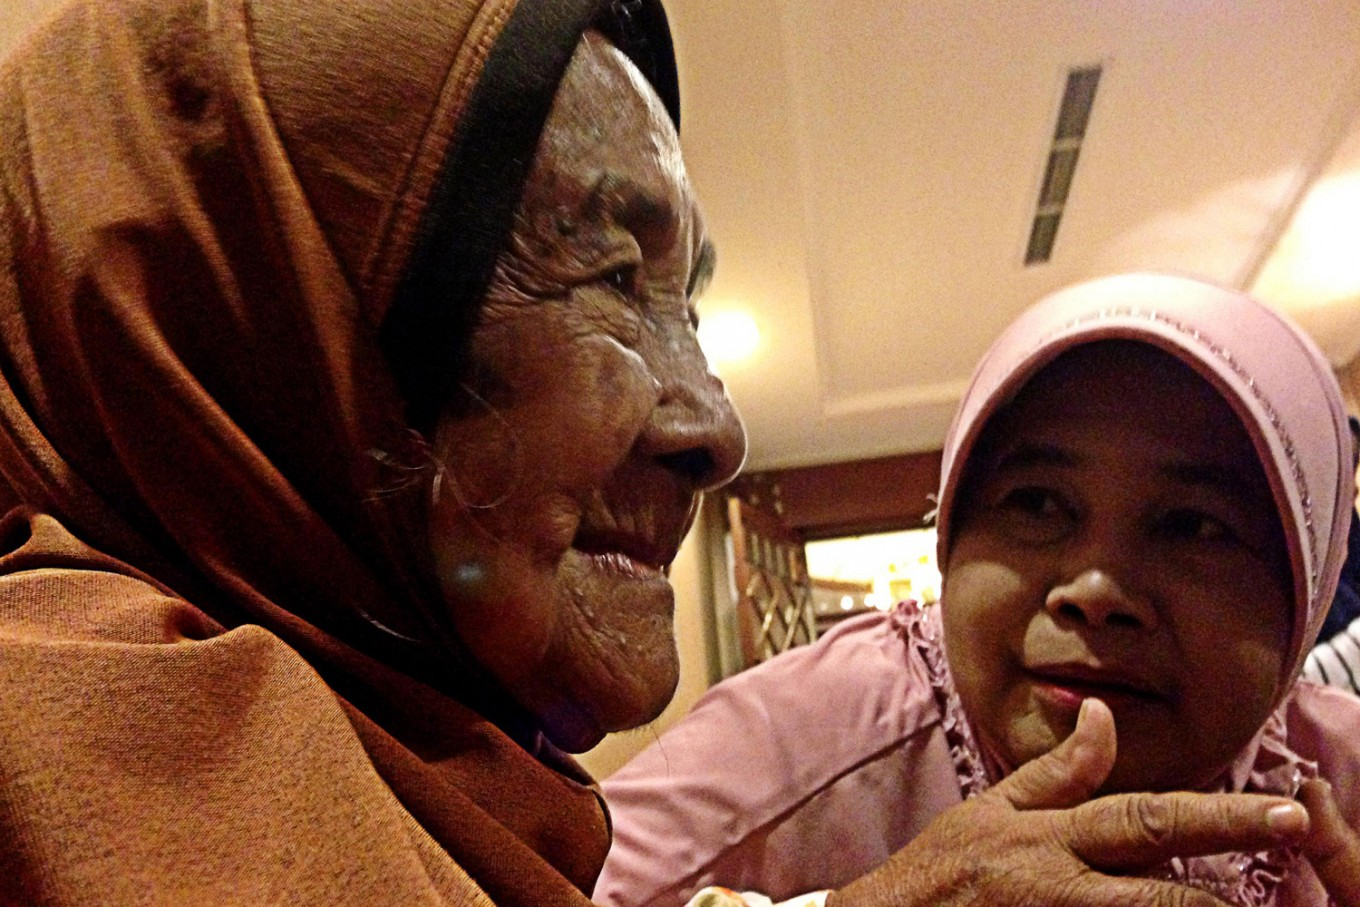 Survivors of 1948 Madiun affair speak out